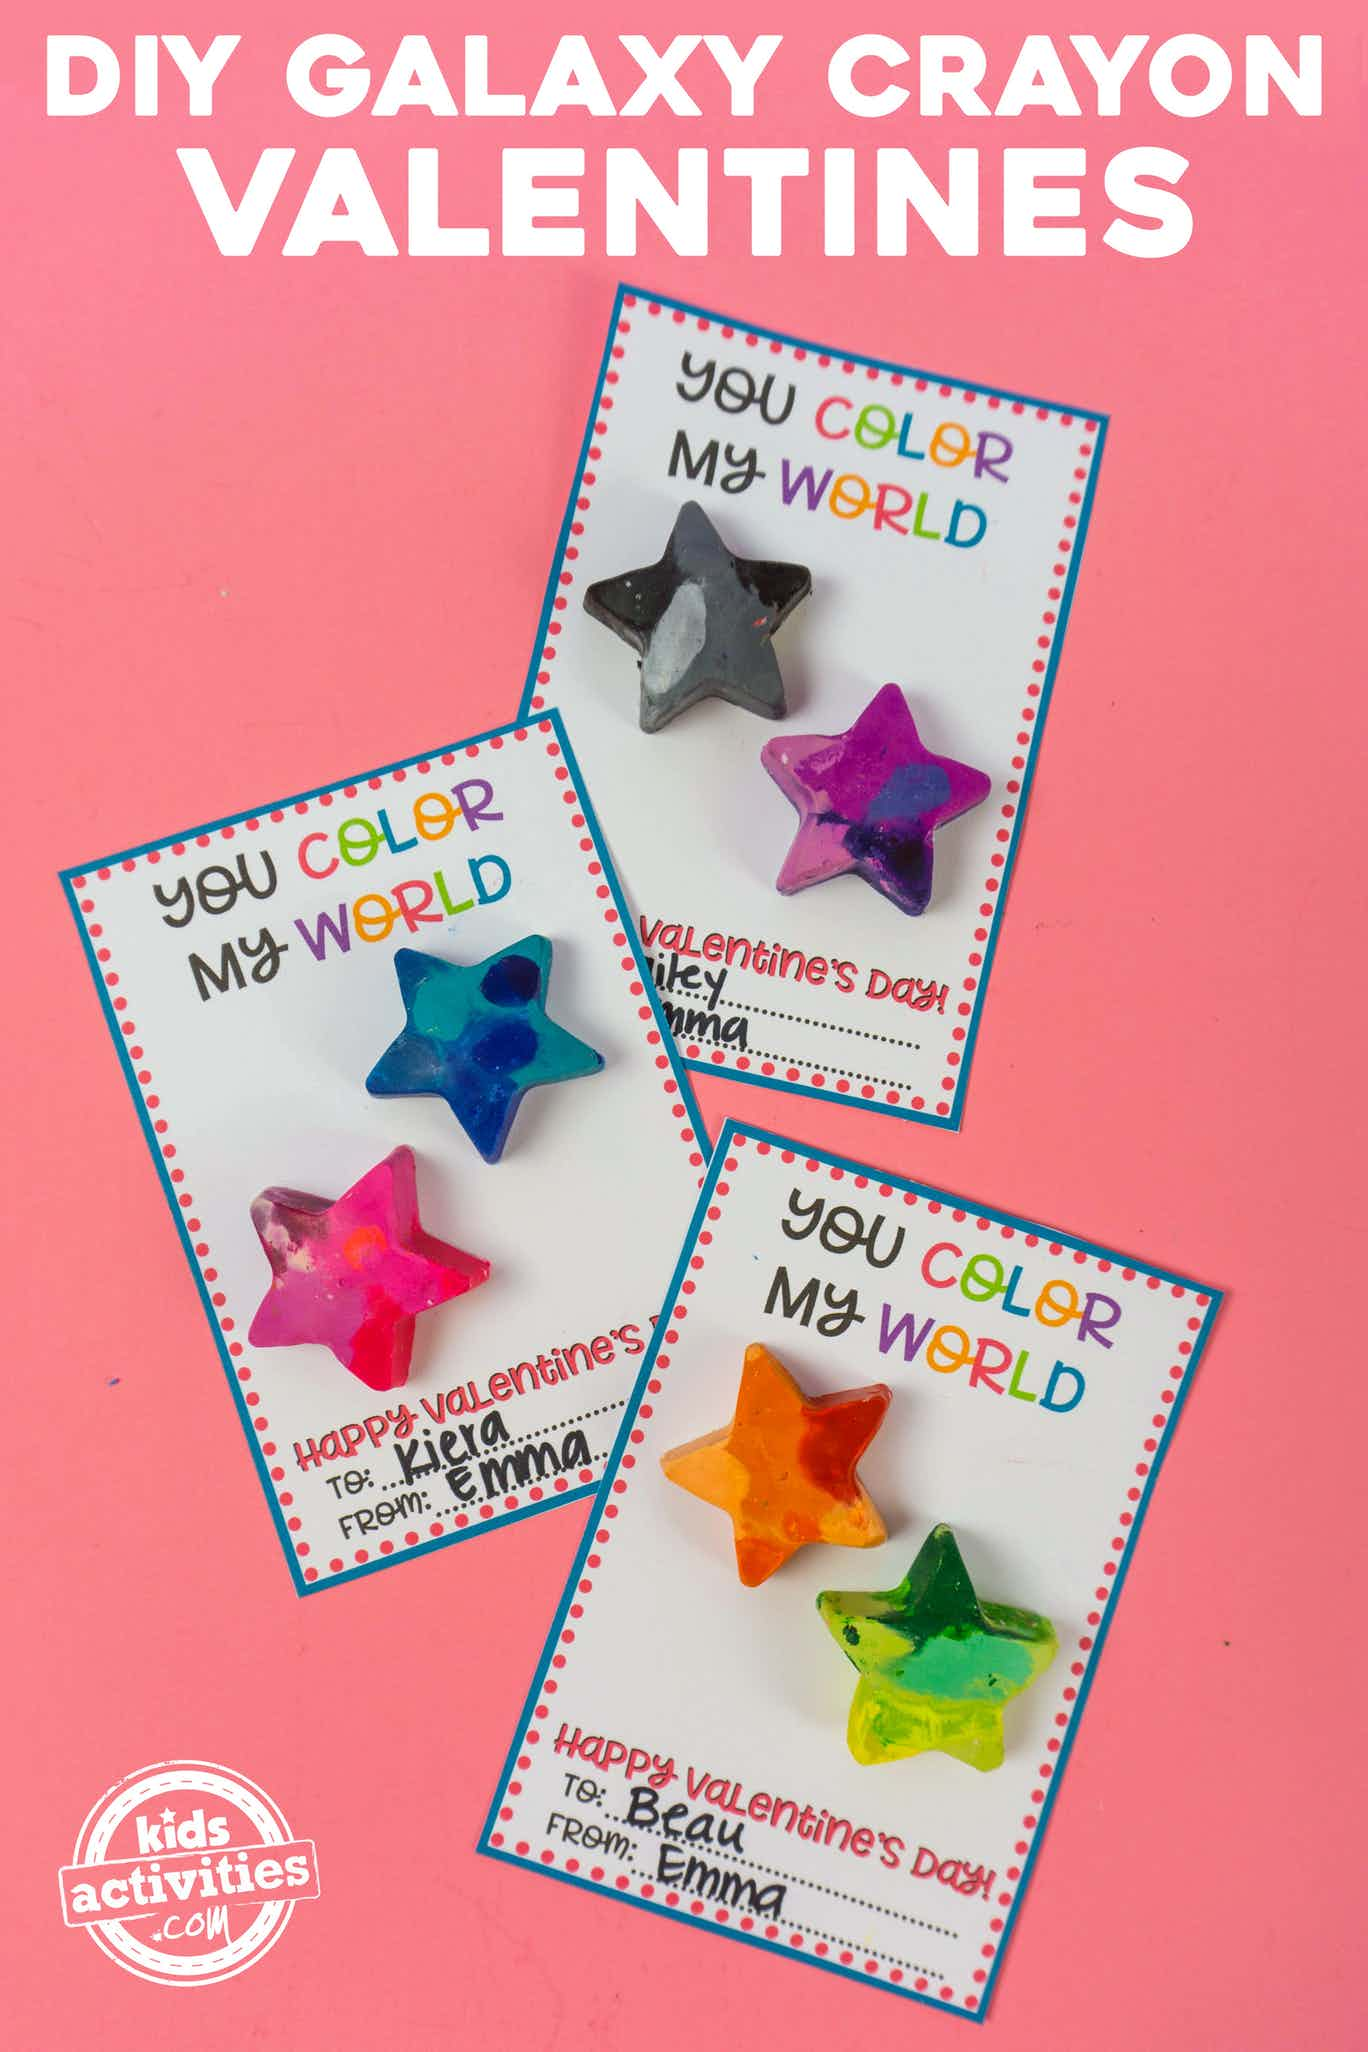 DIY Galaxy Crayon Valentines for Kids You Color My World